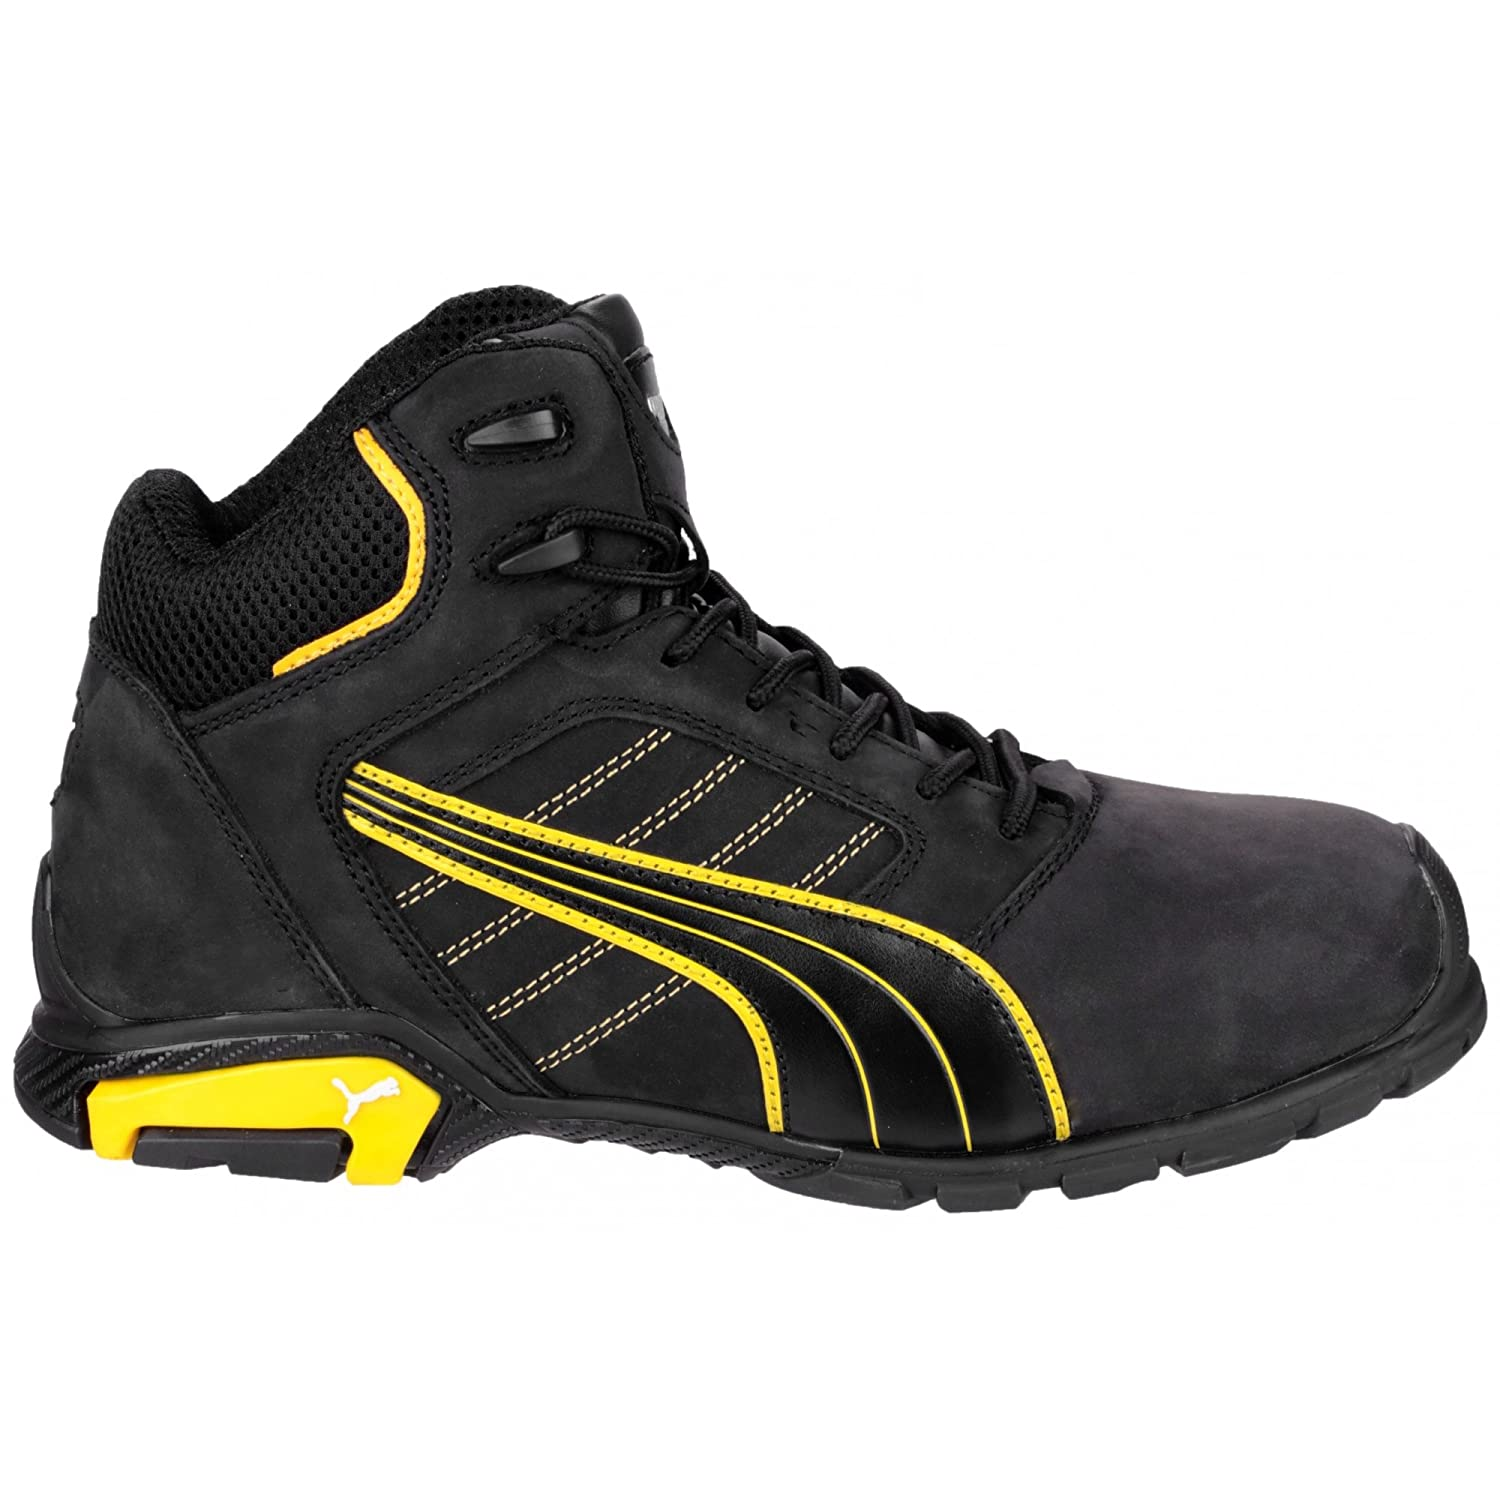 Puma Safety Rio Mid Mens Safety Boots  Amazon.co.uk  Shoes   Bags eec156d4b